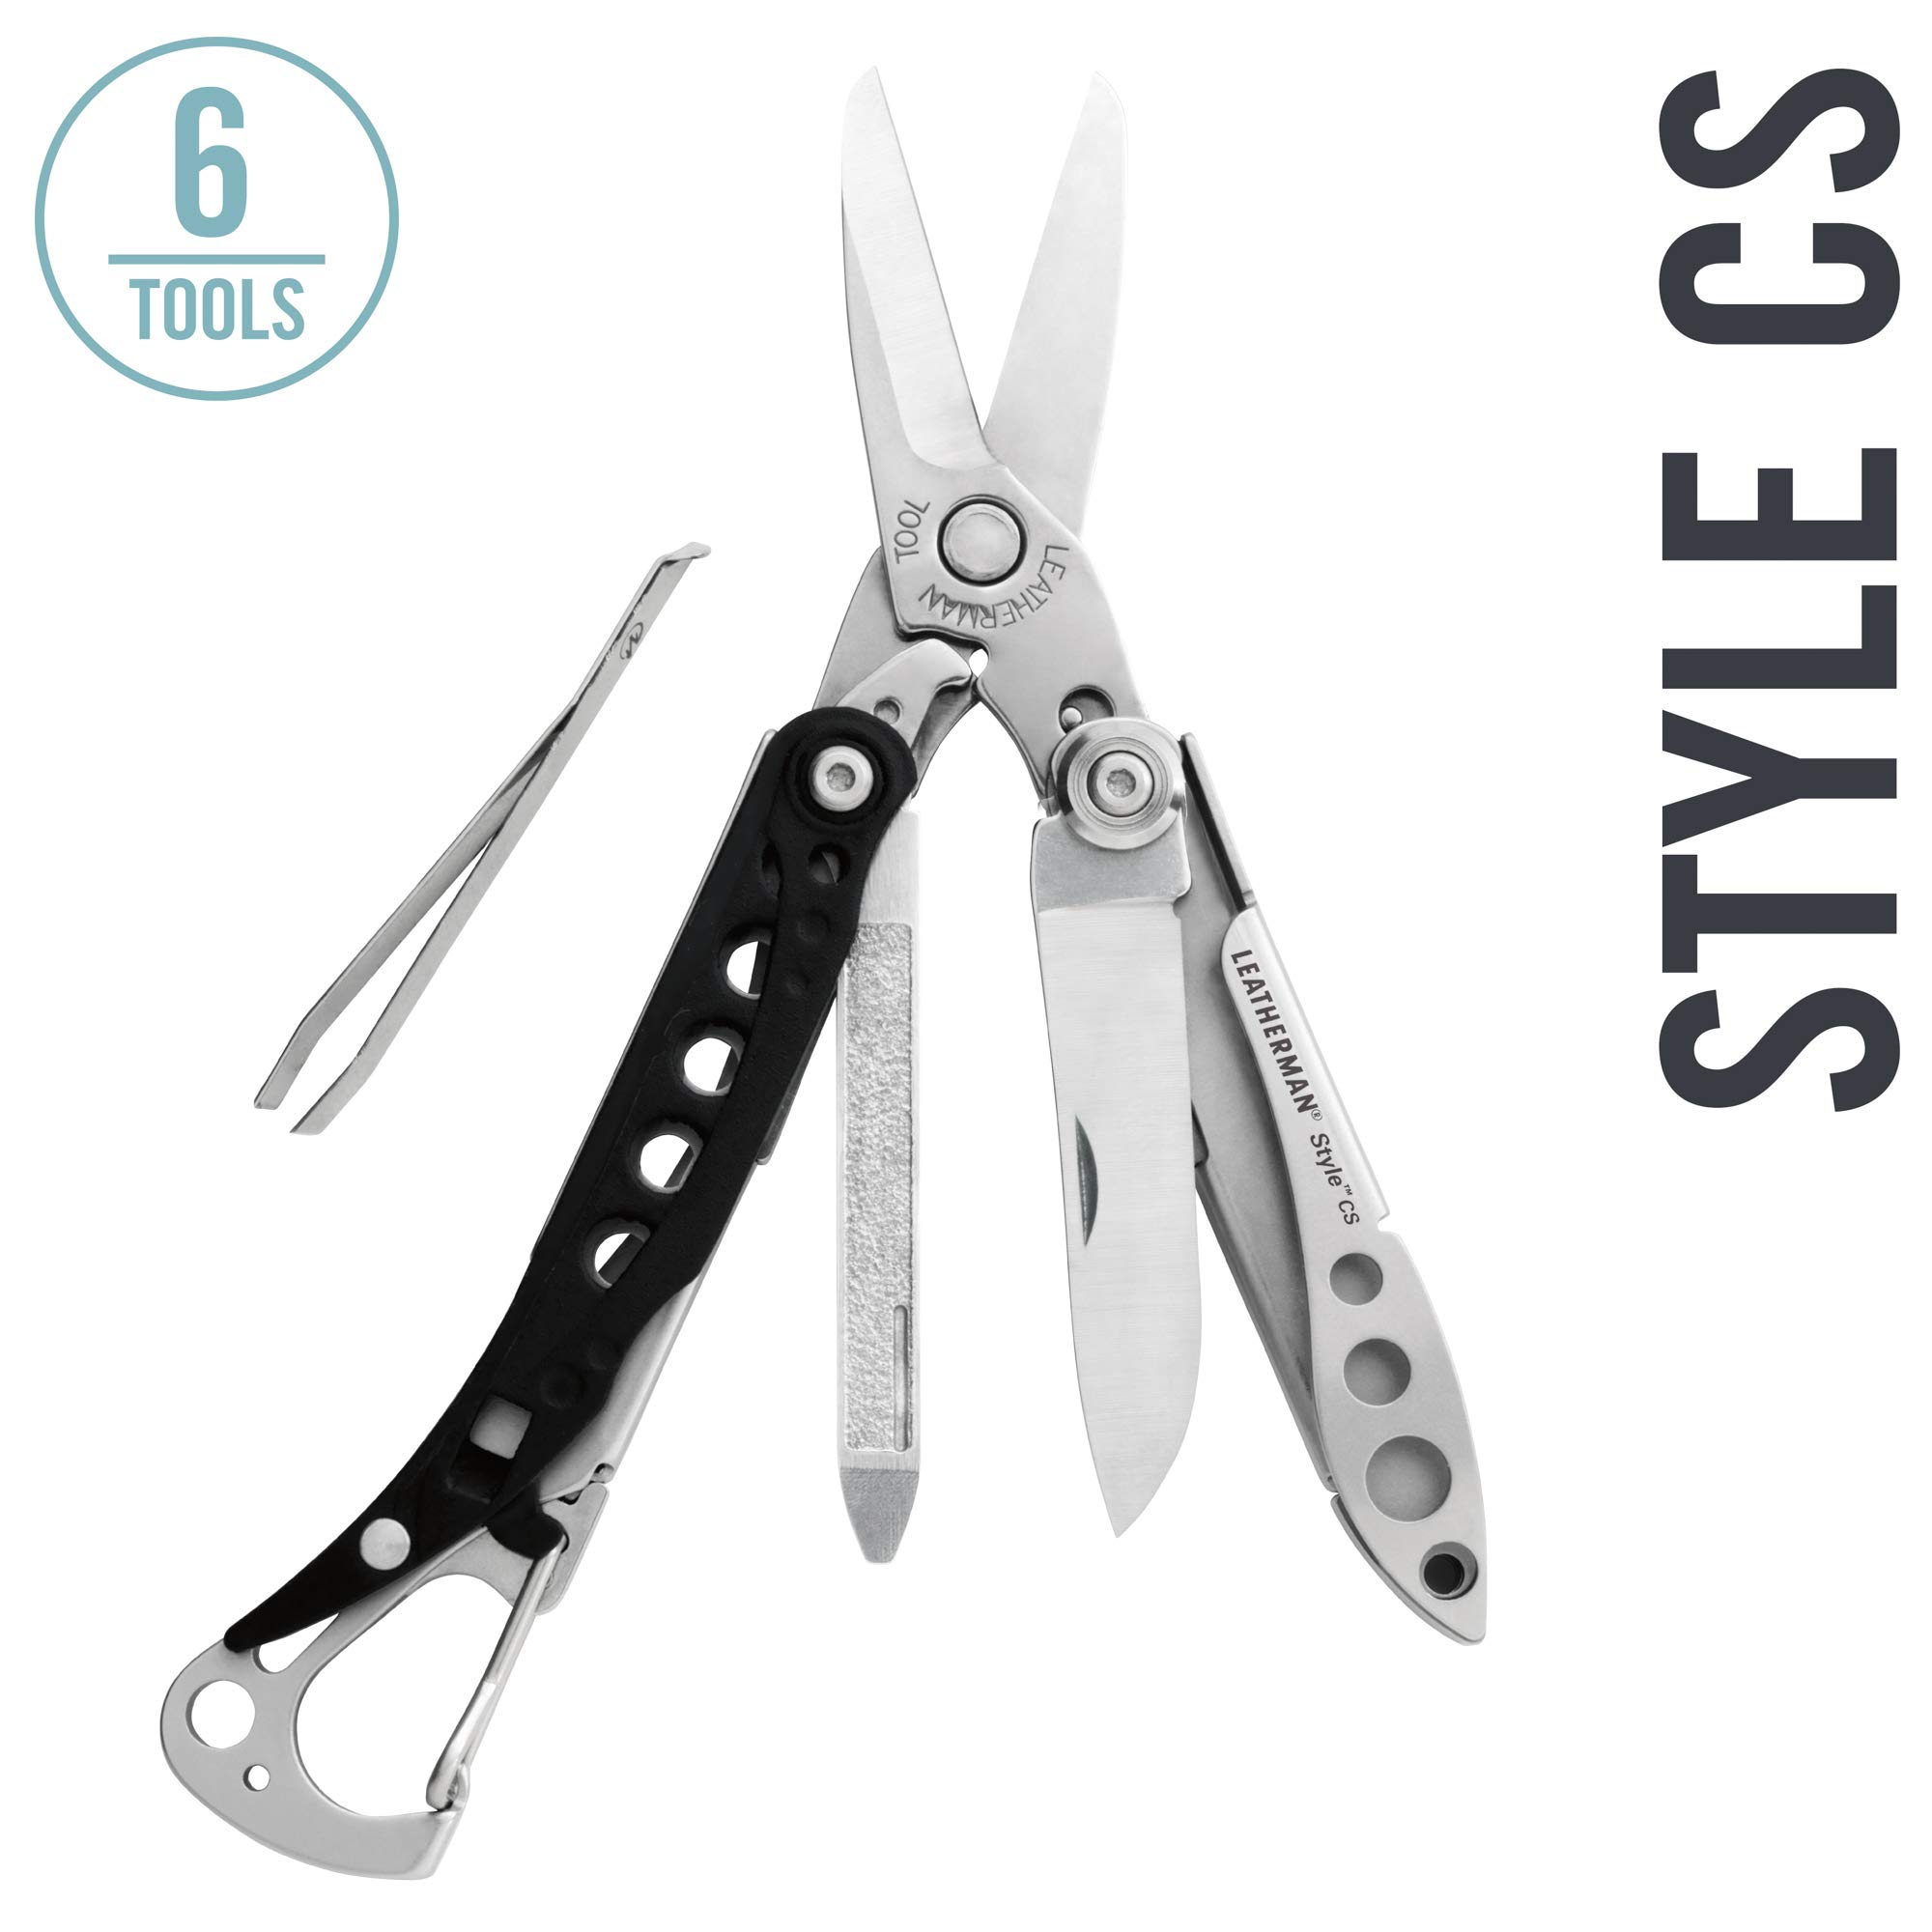 Leatherman - Style CS Multitool, Stainless Steel